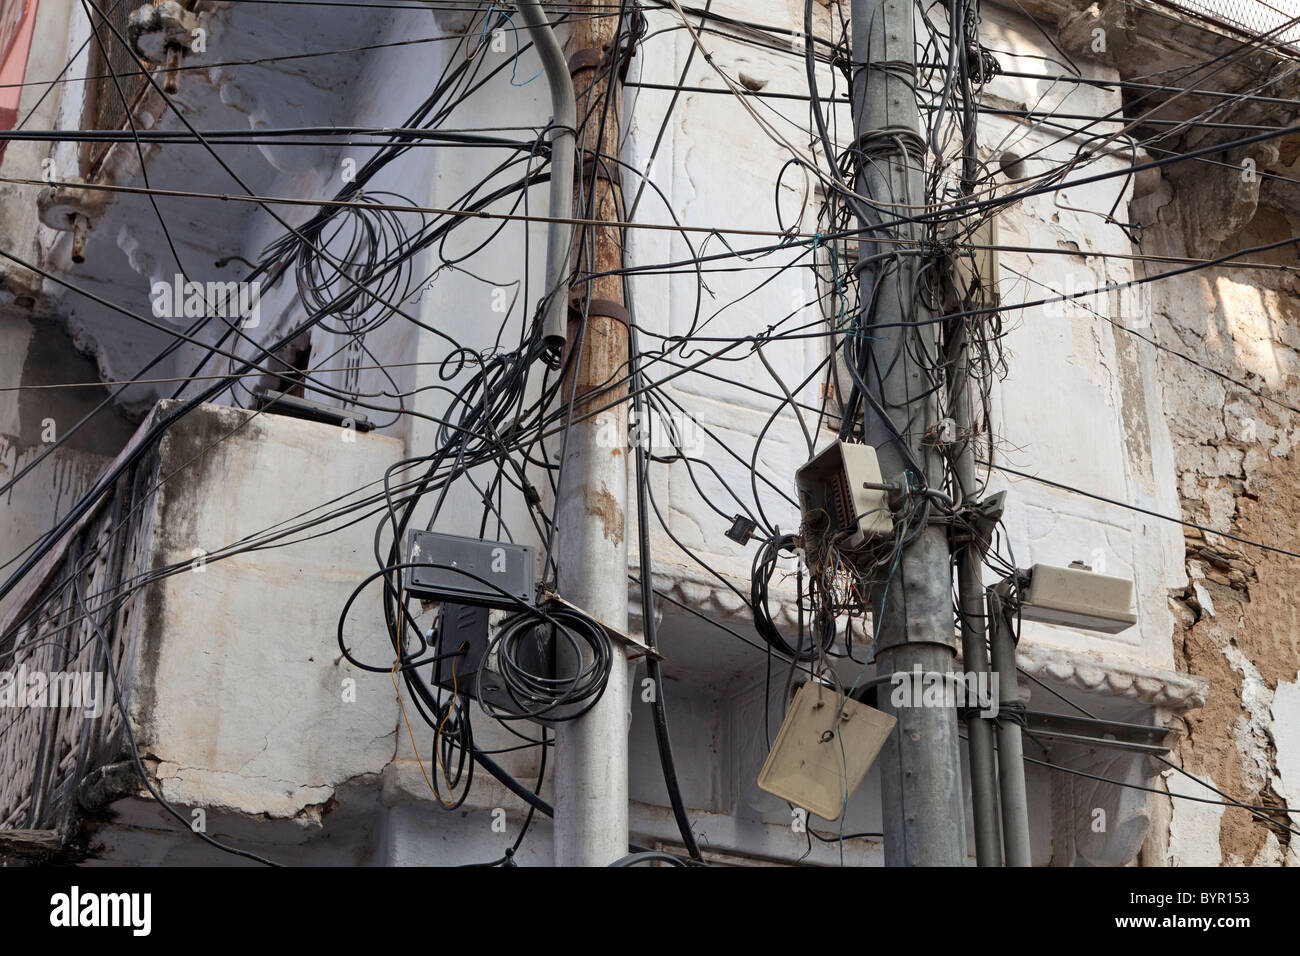 wires india stock photos wires india stock images alamy rh alamy com Home Electrical Wiring Diagrams India Electrical Wiring Mess